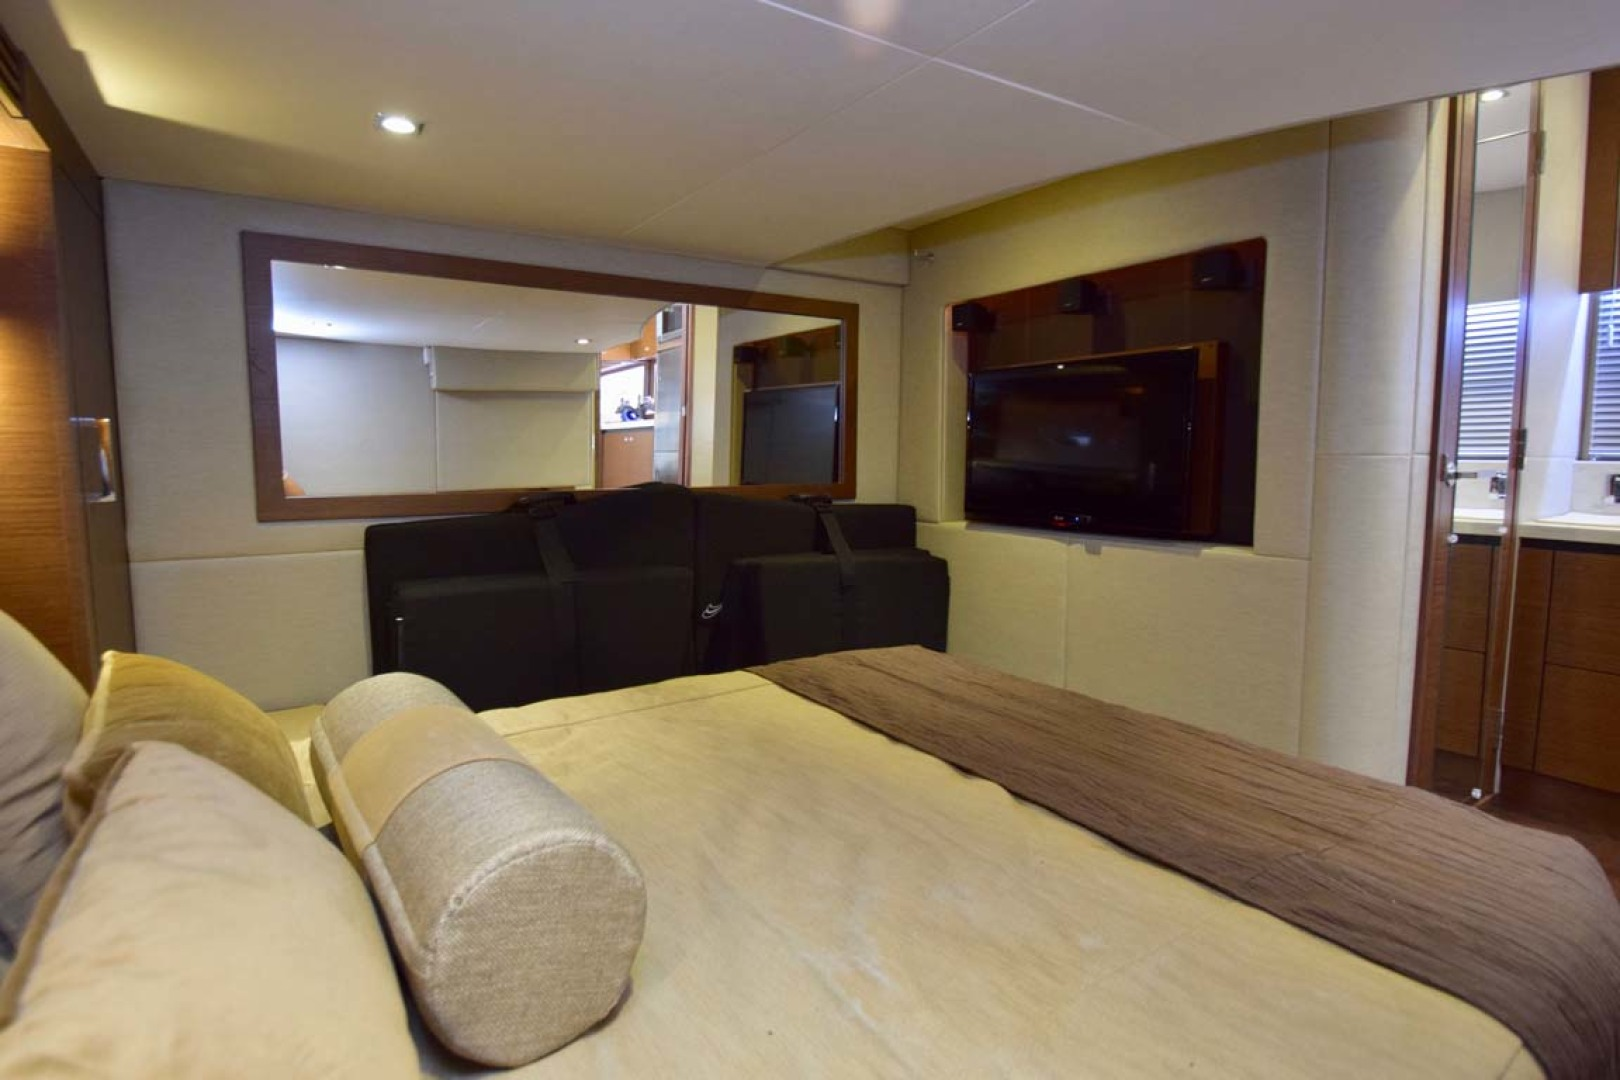 Sea Ray-510 Sundancer 2015 -Ft Lauderdale-Florida-United States-Main Stateroom View To Port With Large Flat Screen TV-1189943 | Thumbnail